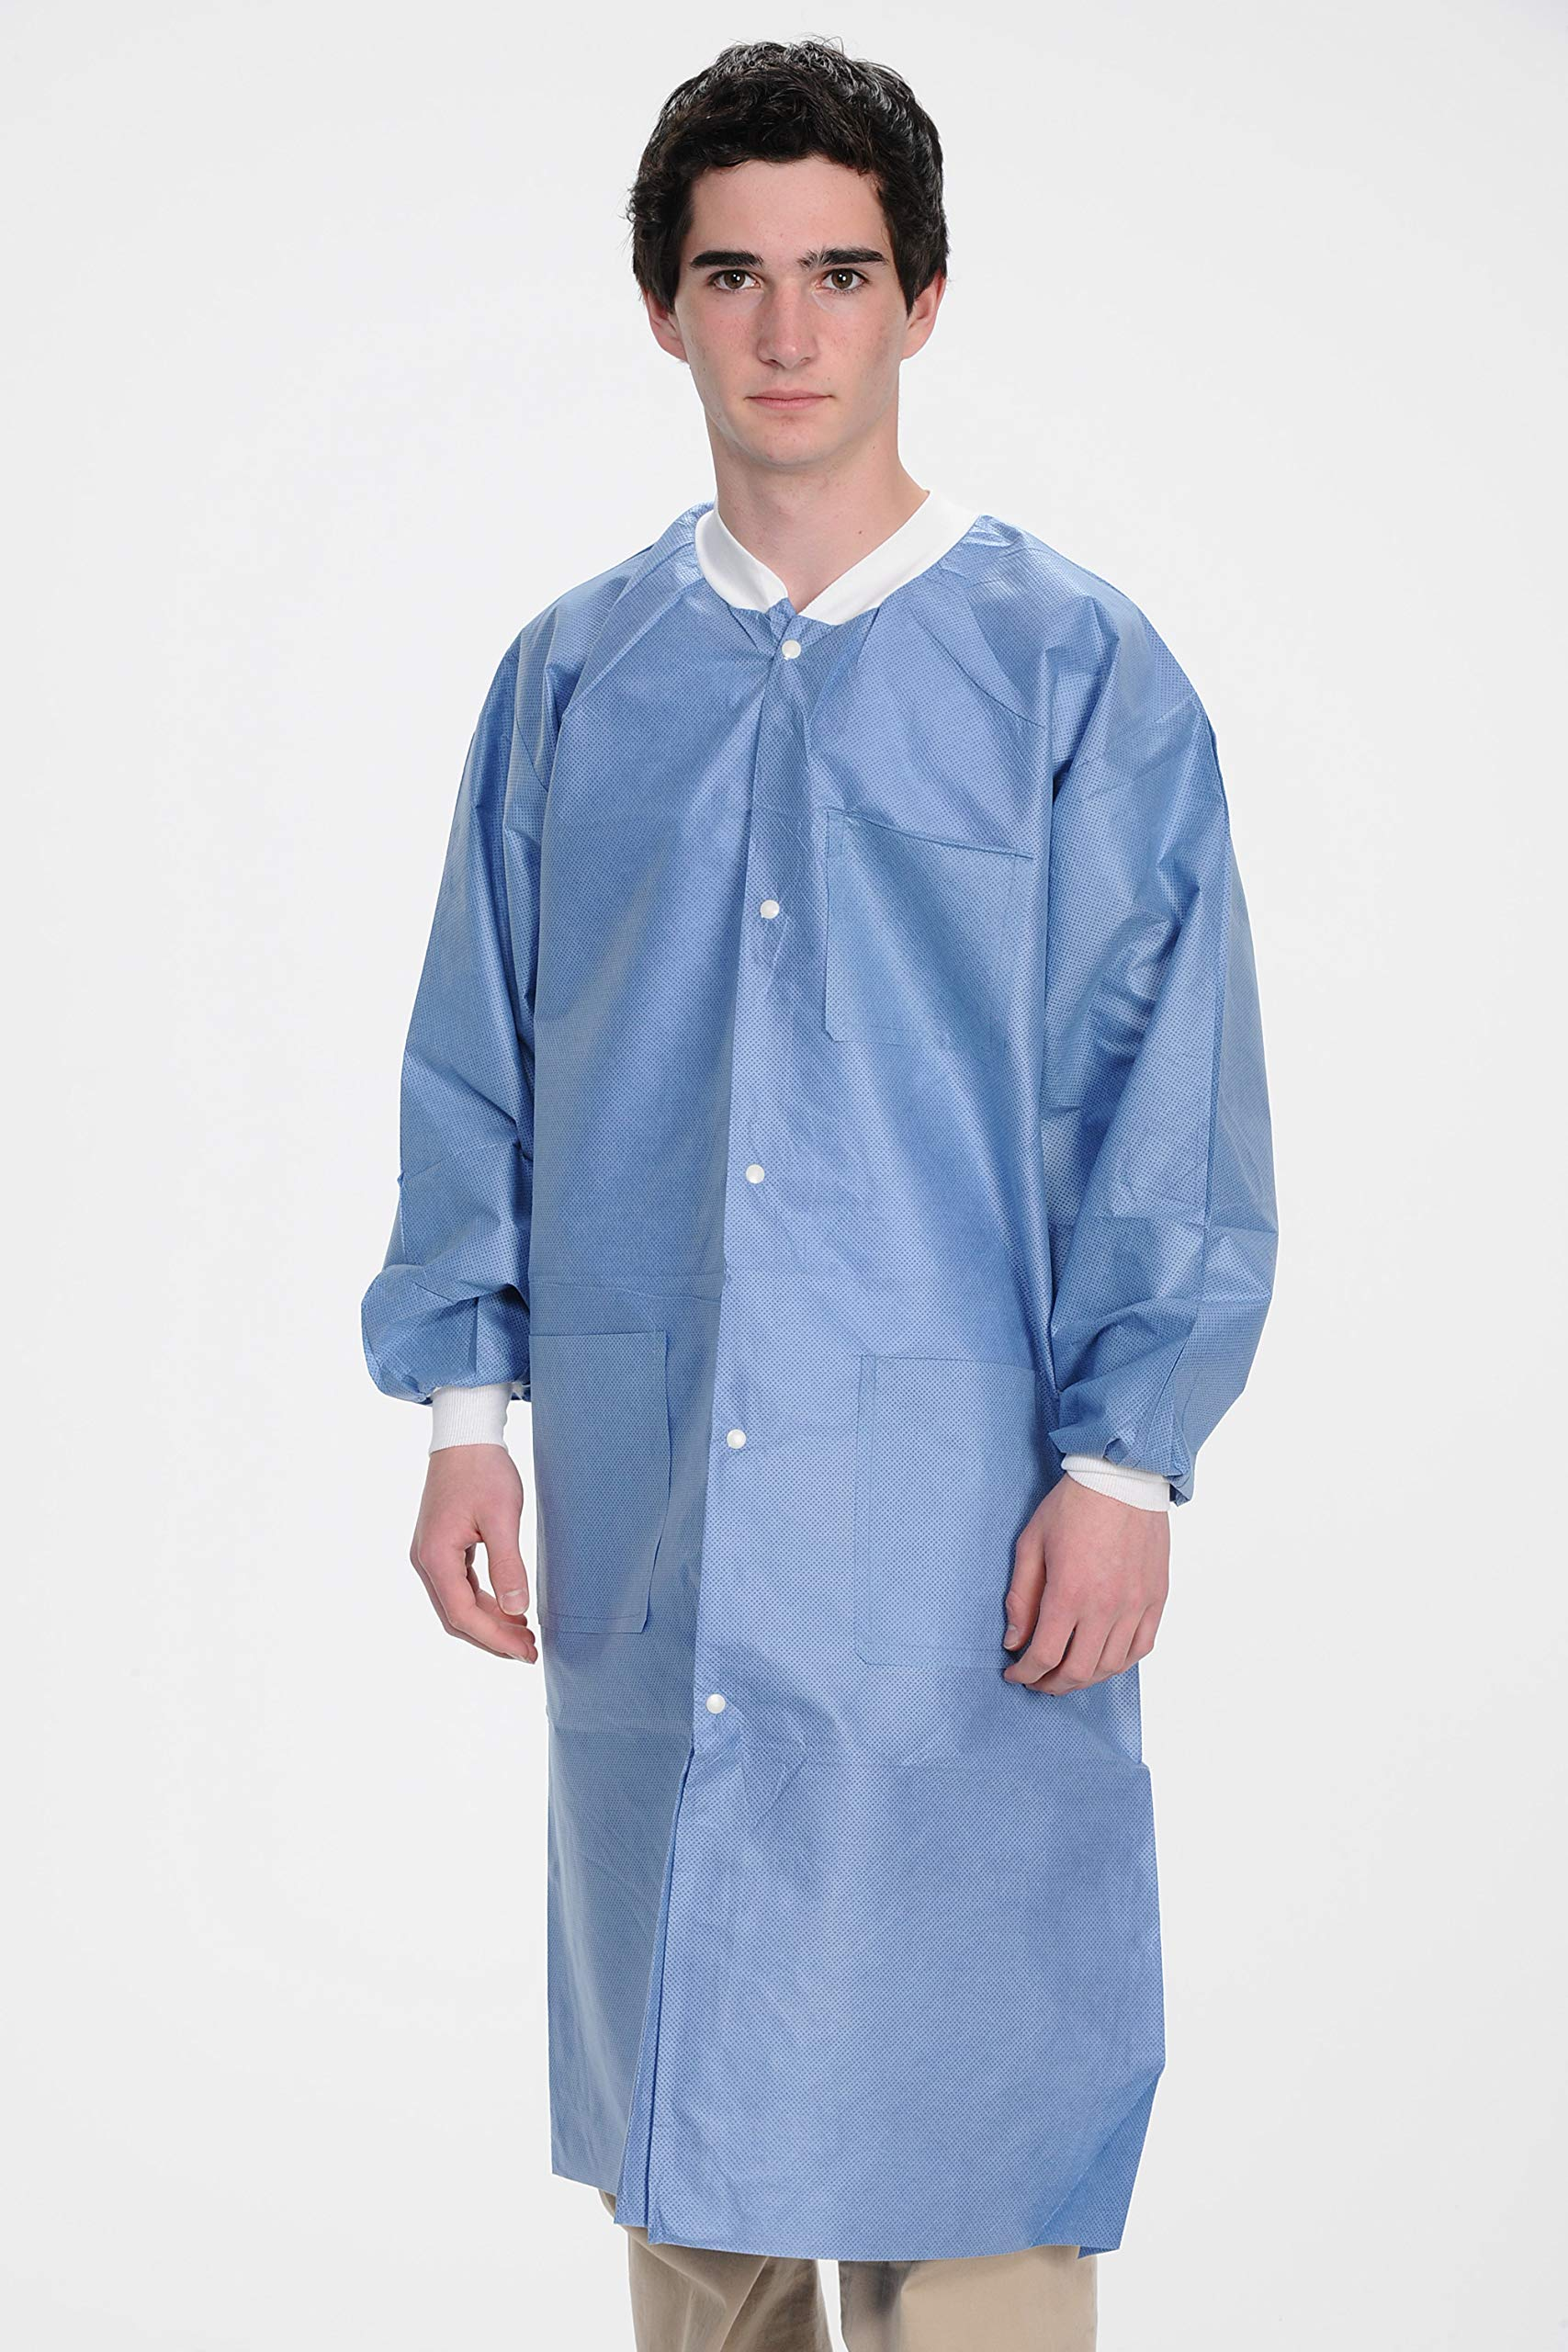 ValuMax 3660CB2XL Extra-Safe, Wrinkle-Free, Noble Looking Disposable SMS Knee Length Lab Coat, Ceil Blue, 2XL, Pack of 10